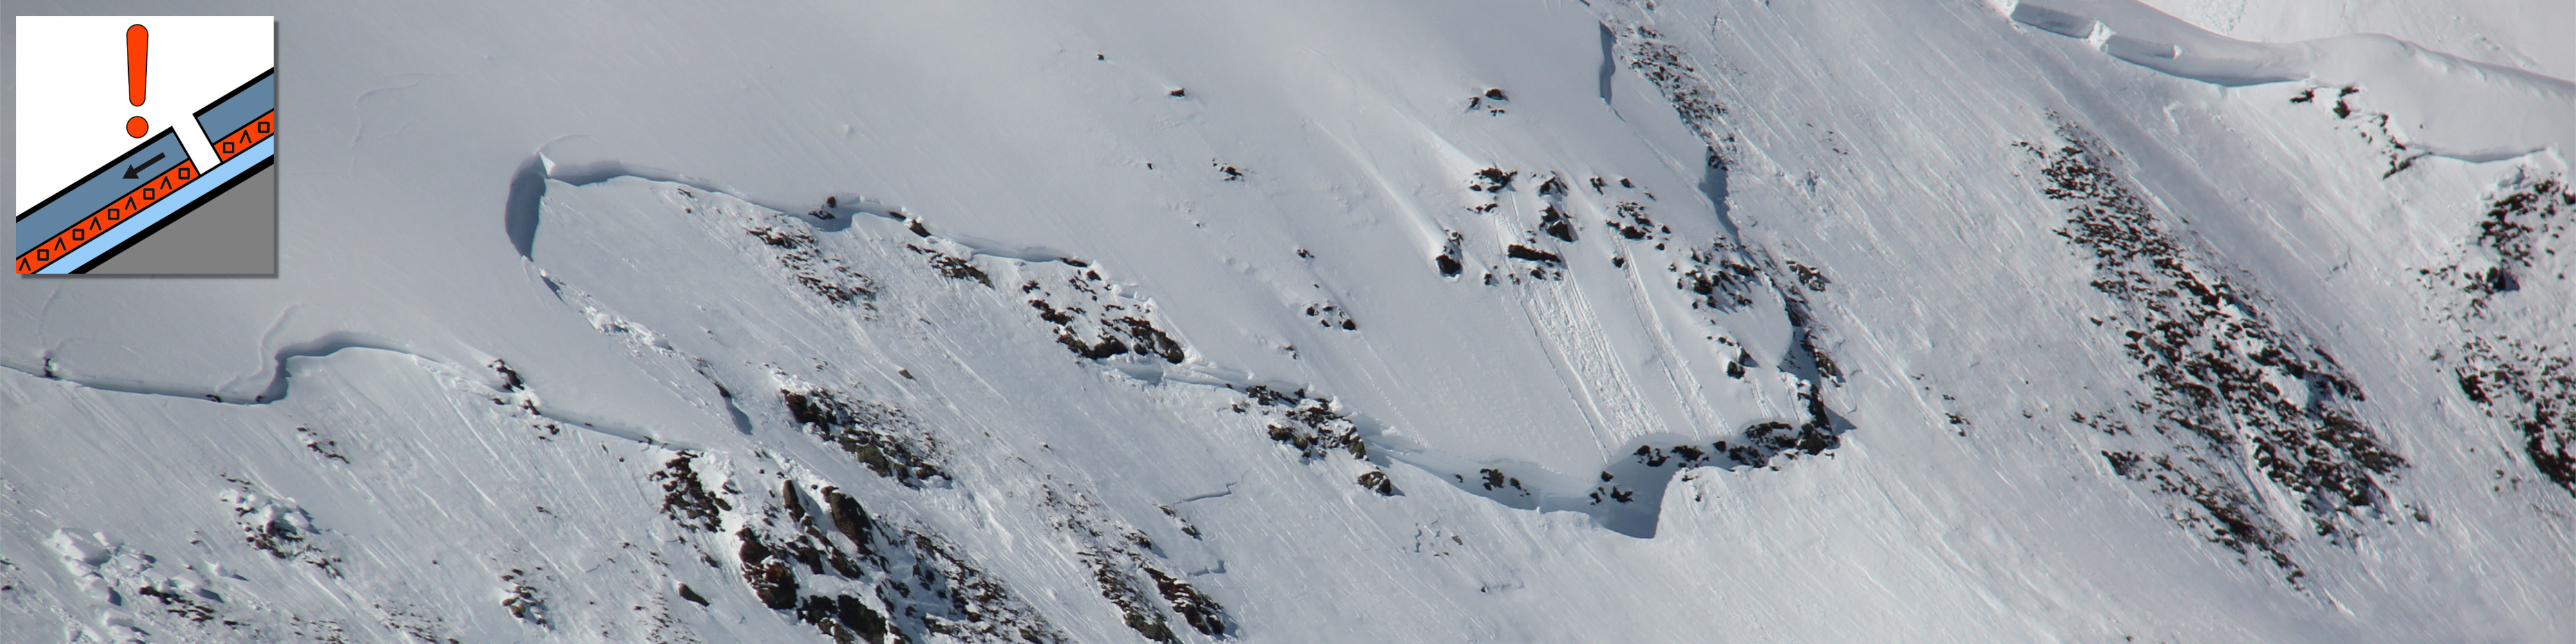 Avalanche problems persistent weak layers | EAWS European Avalanche Warning Services